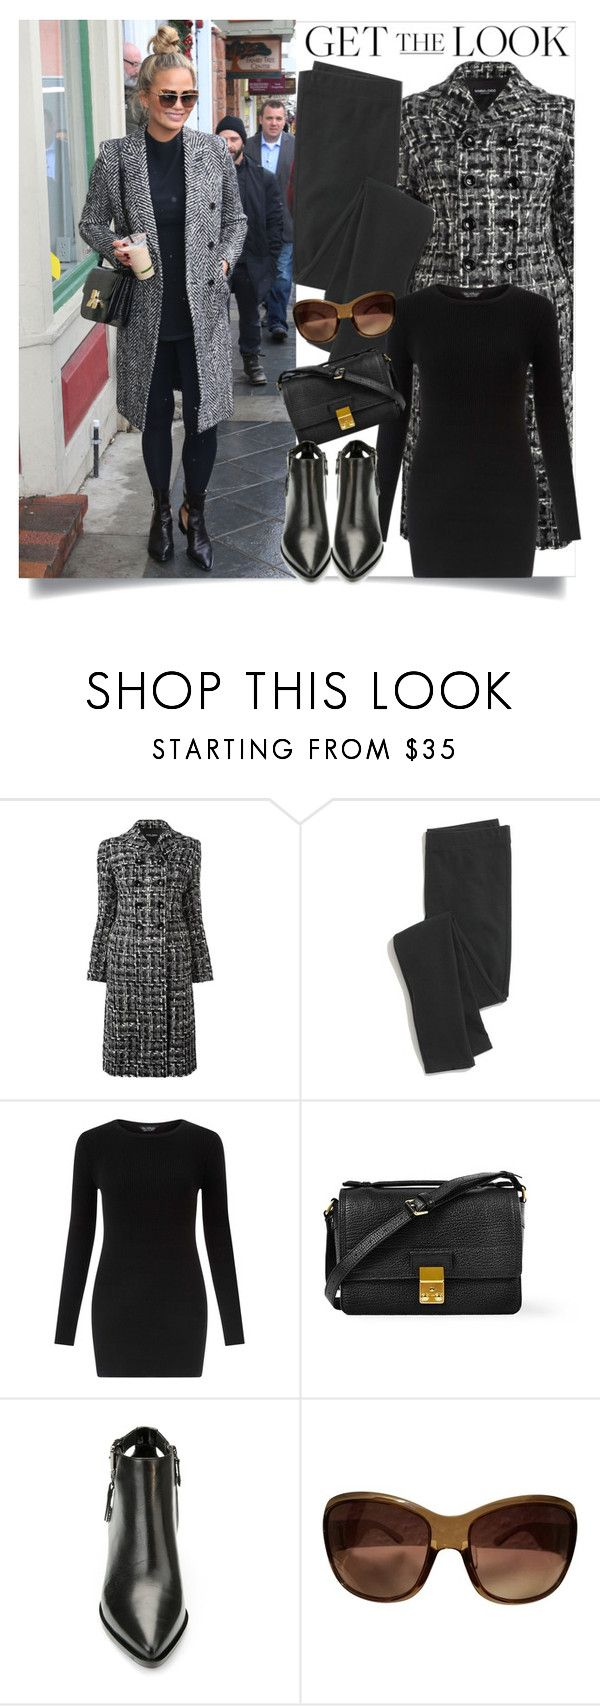 """Get The Look/Chrissy Teigan"" by clotheshawg ❤ liked on Polyvore featuring Dolce&Gabbana, Madewell, Miss Selfridge, 3.1 Phillip Lim, Geox and Christian Dior"